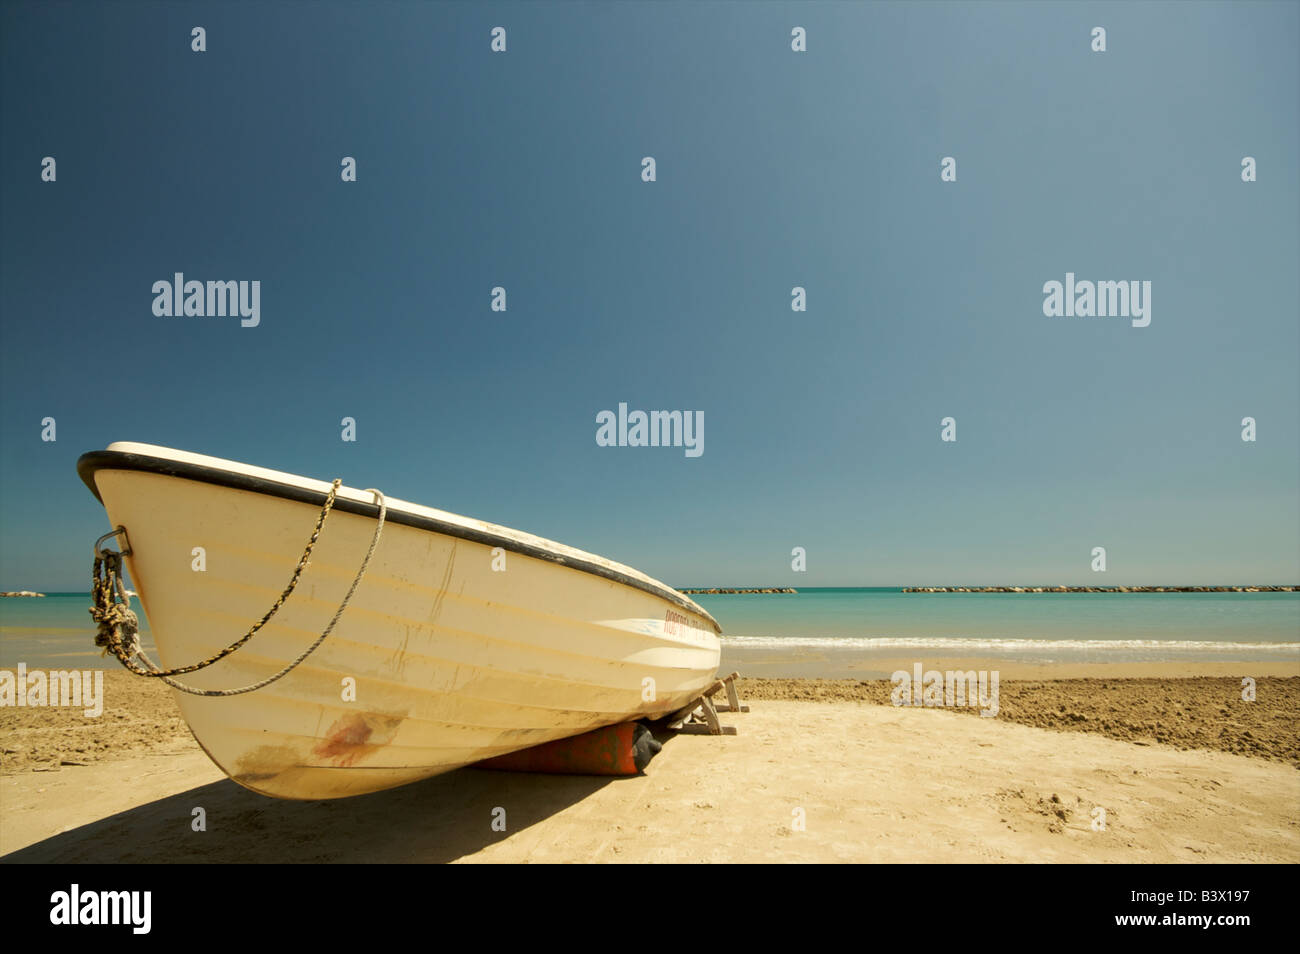 A white rowing boat sits on the beach at Grottamare in the Italian region of Le Marche - Stock Image